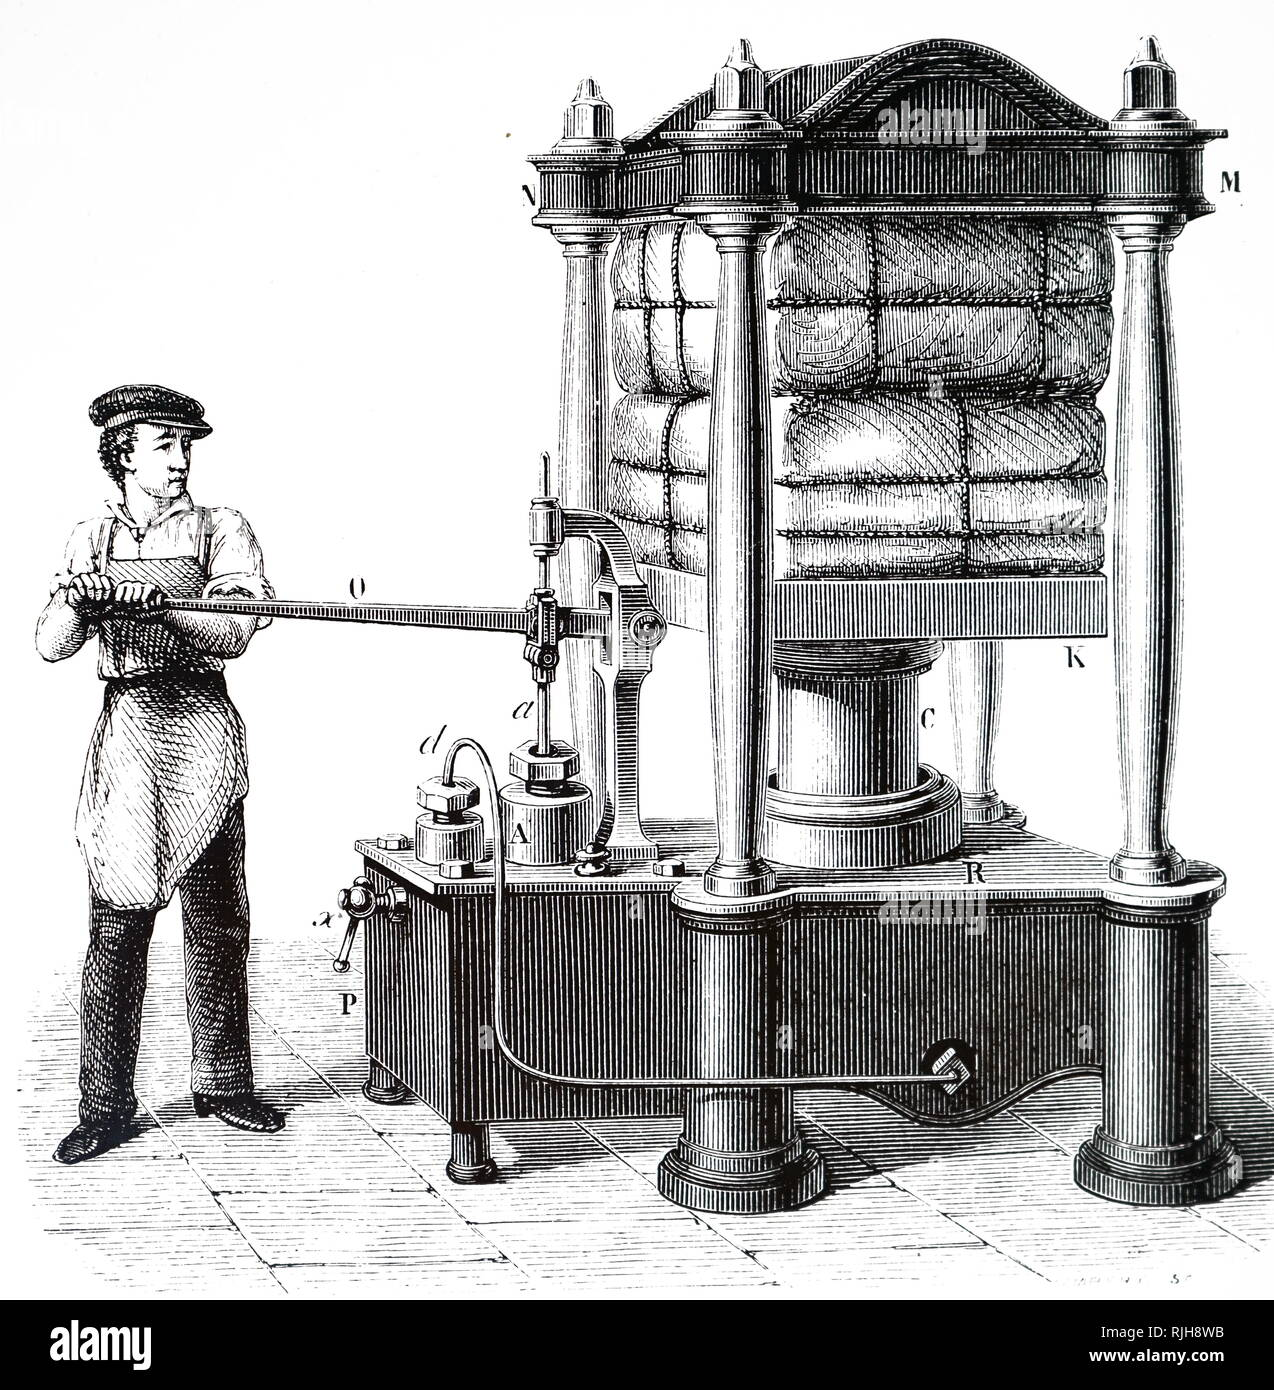 An engraving depicting a hand-powered hydraulic press: material to be compressed is placed on a plate which is raised and lowered by piston, c, which descends into a tank of water. The tank is connected to the force pump (left) using a leaden tube. When the pump handle is operated, water in the tank beneath C rises, so lifting the piston and compressing the bales. Joseph Bramah (1748-1814) an English inventor and locksmith who is best known for inventing the hydraulic press. Dated 19th century - Stock Image